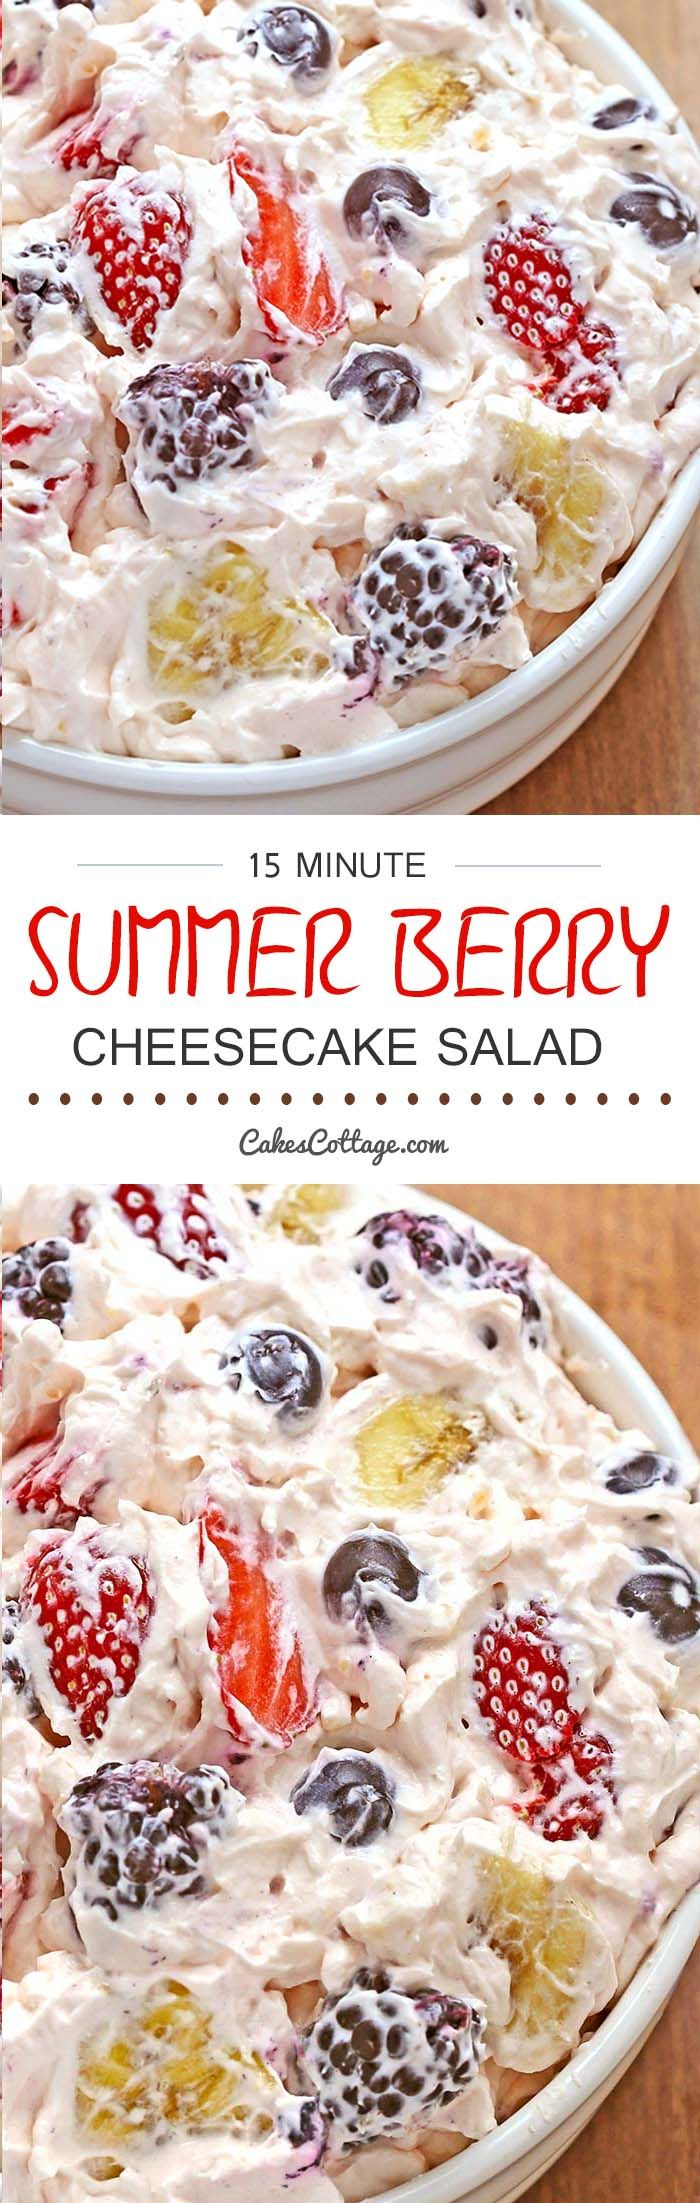 Summer Berry Cheesecake Salad